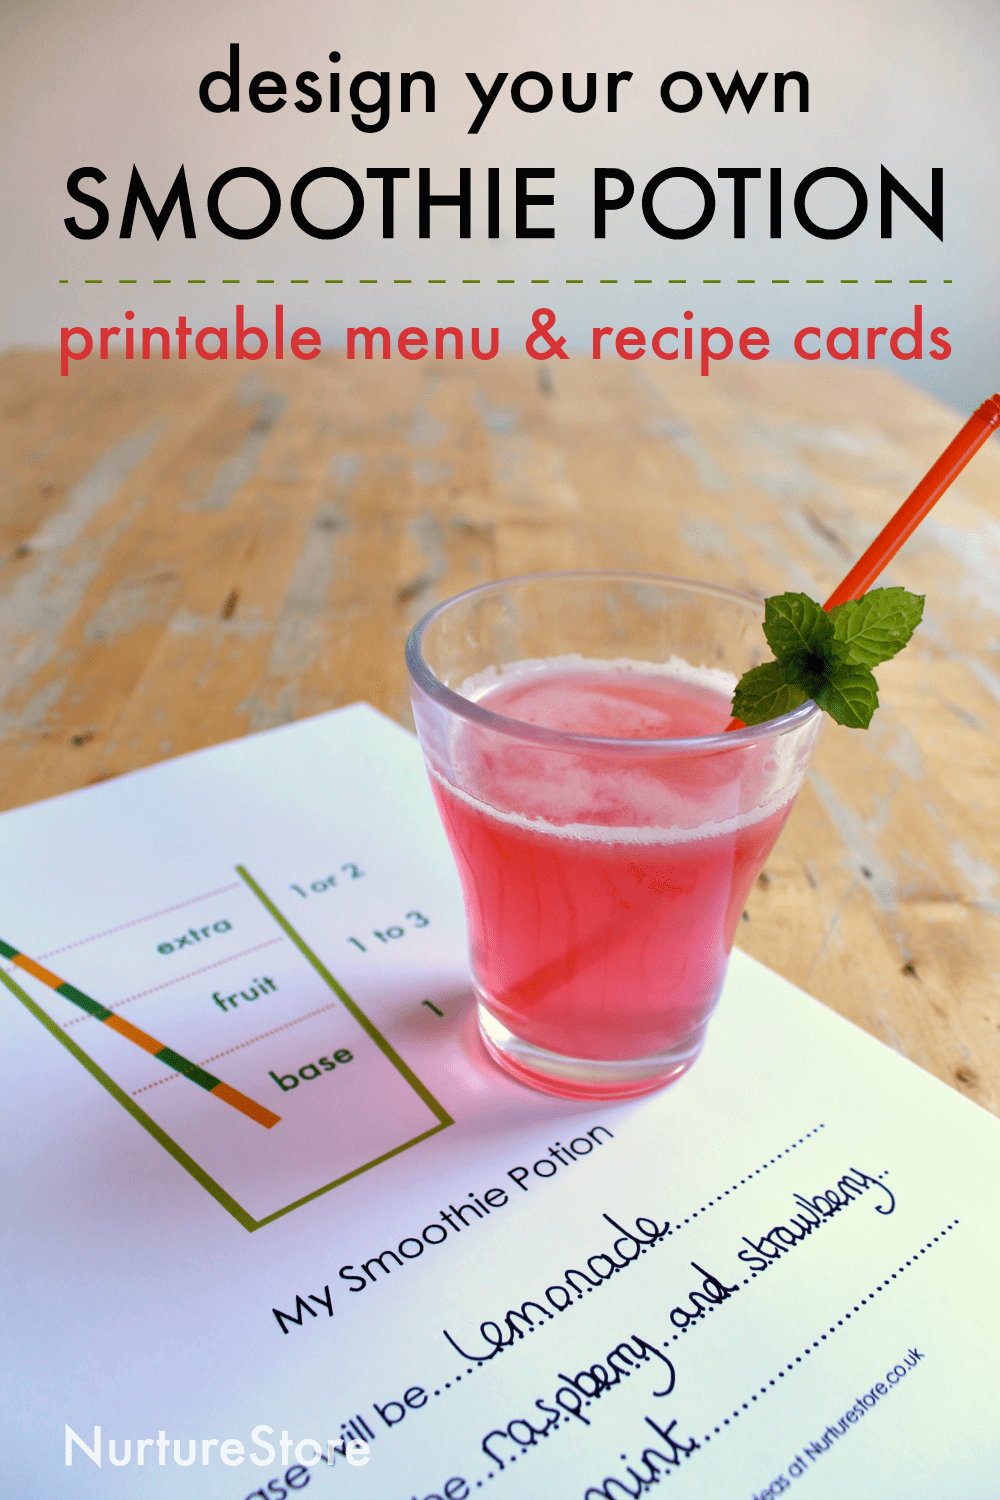 Easter Songs For Kids: Smoothie Making Lesson For Kids With Printable Smoothie